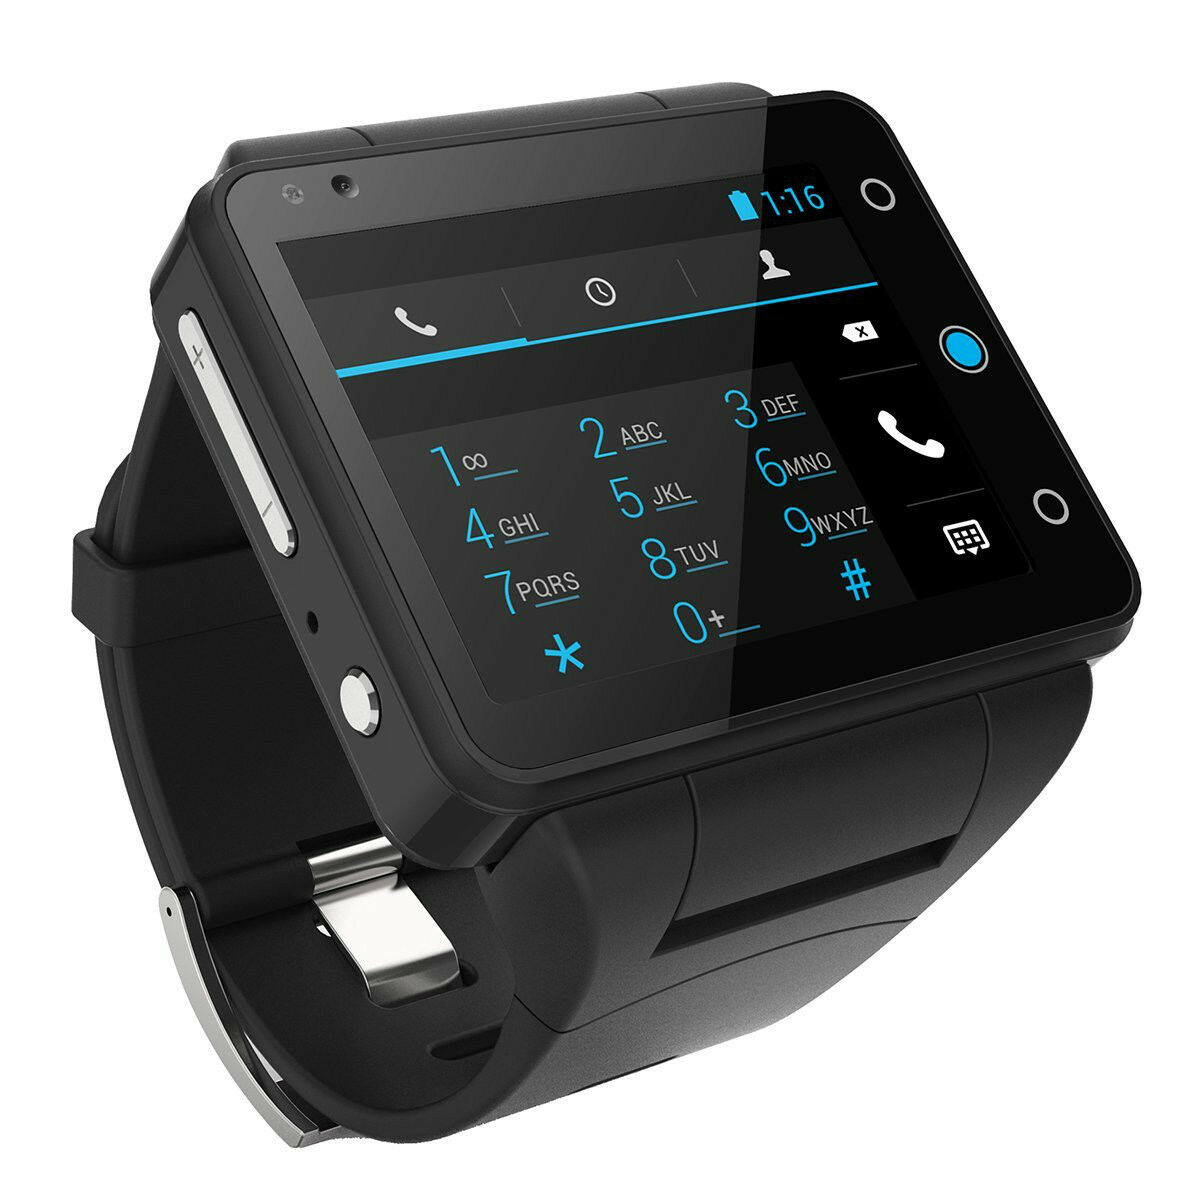 NEPTUNE PINE STANDALONE SMARTWATCH-PHONE 32GB ANDROID 2.4 ...